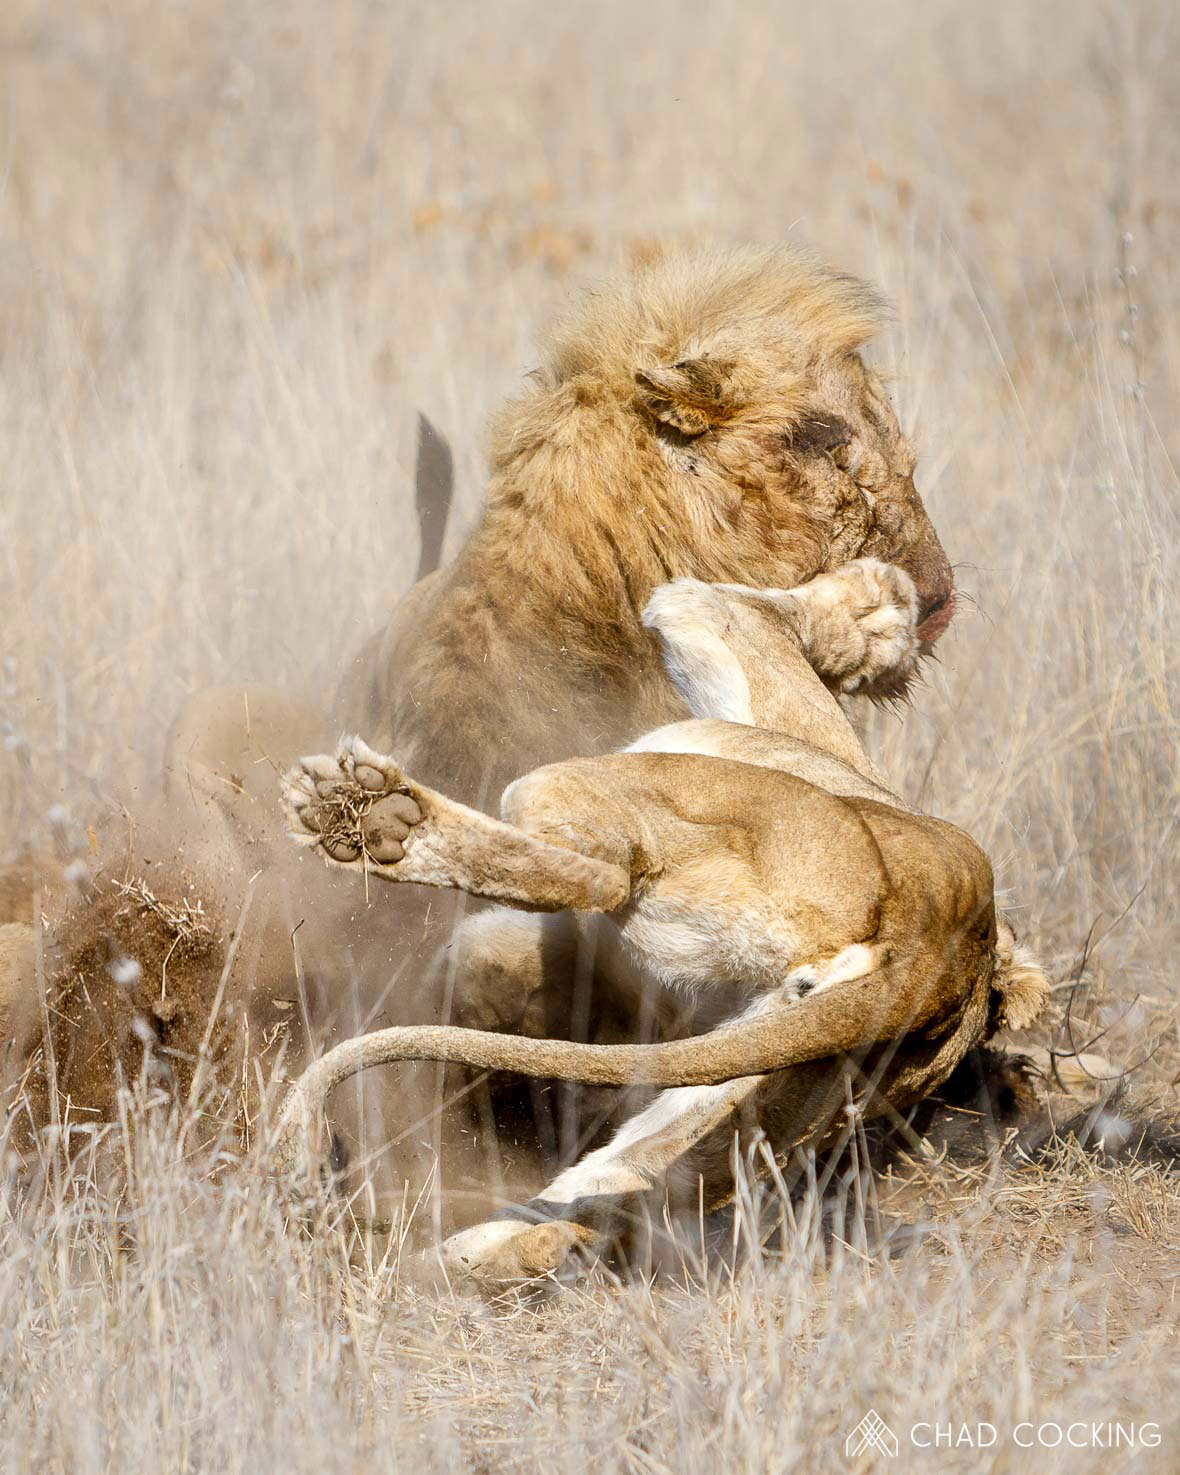 Tanda Tula - Mayambula Pride fighting over a wildebeest kill in the Greater Kruger, South Africa